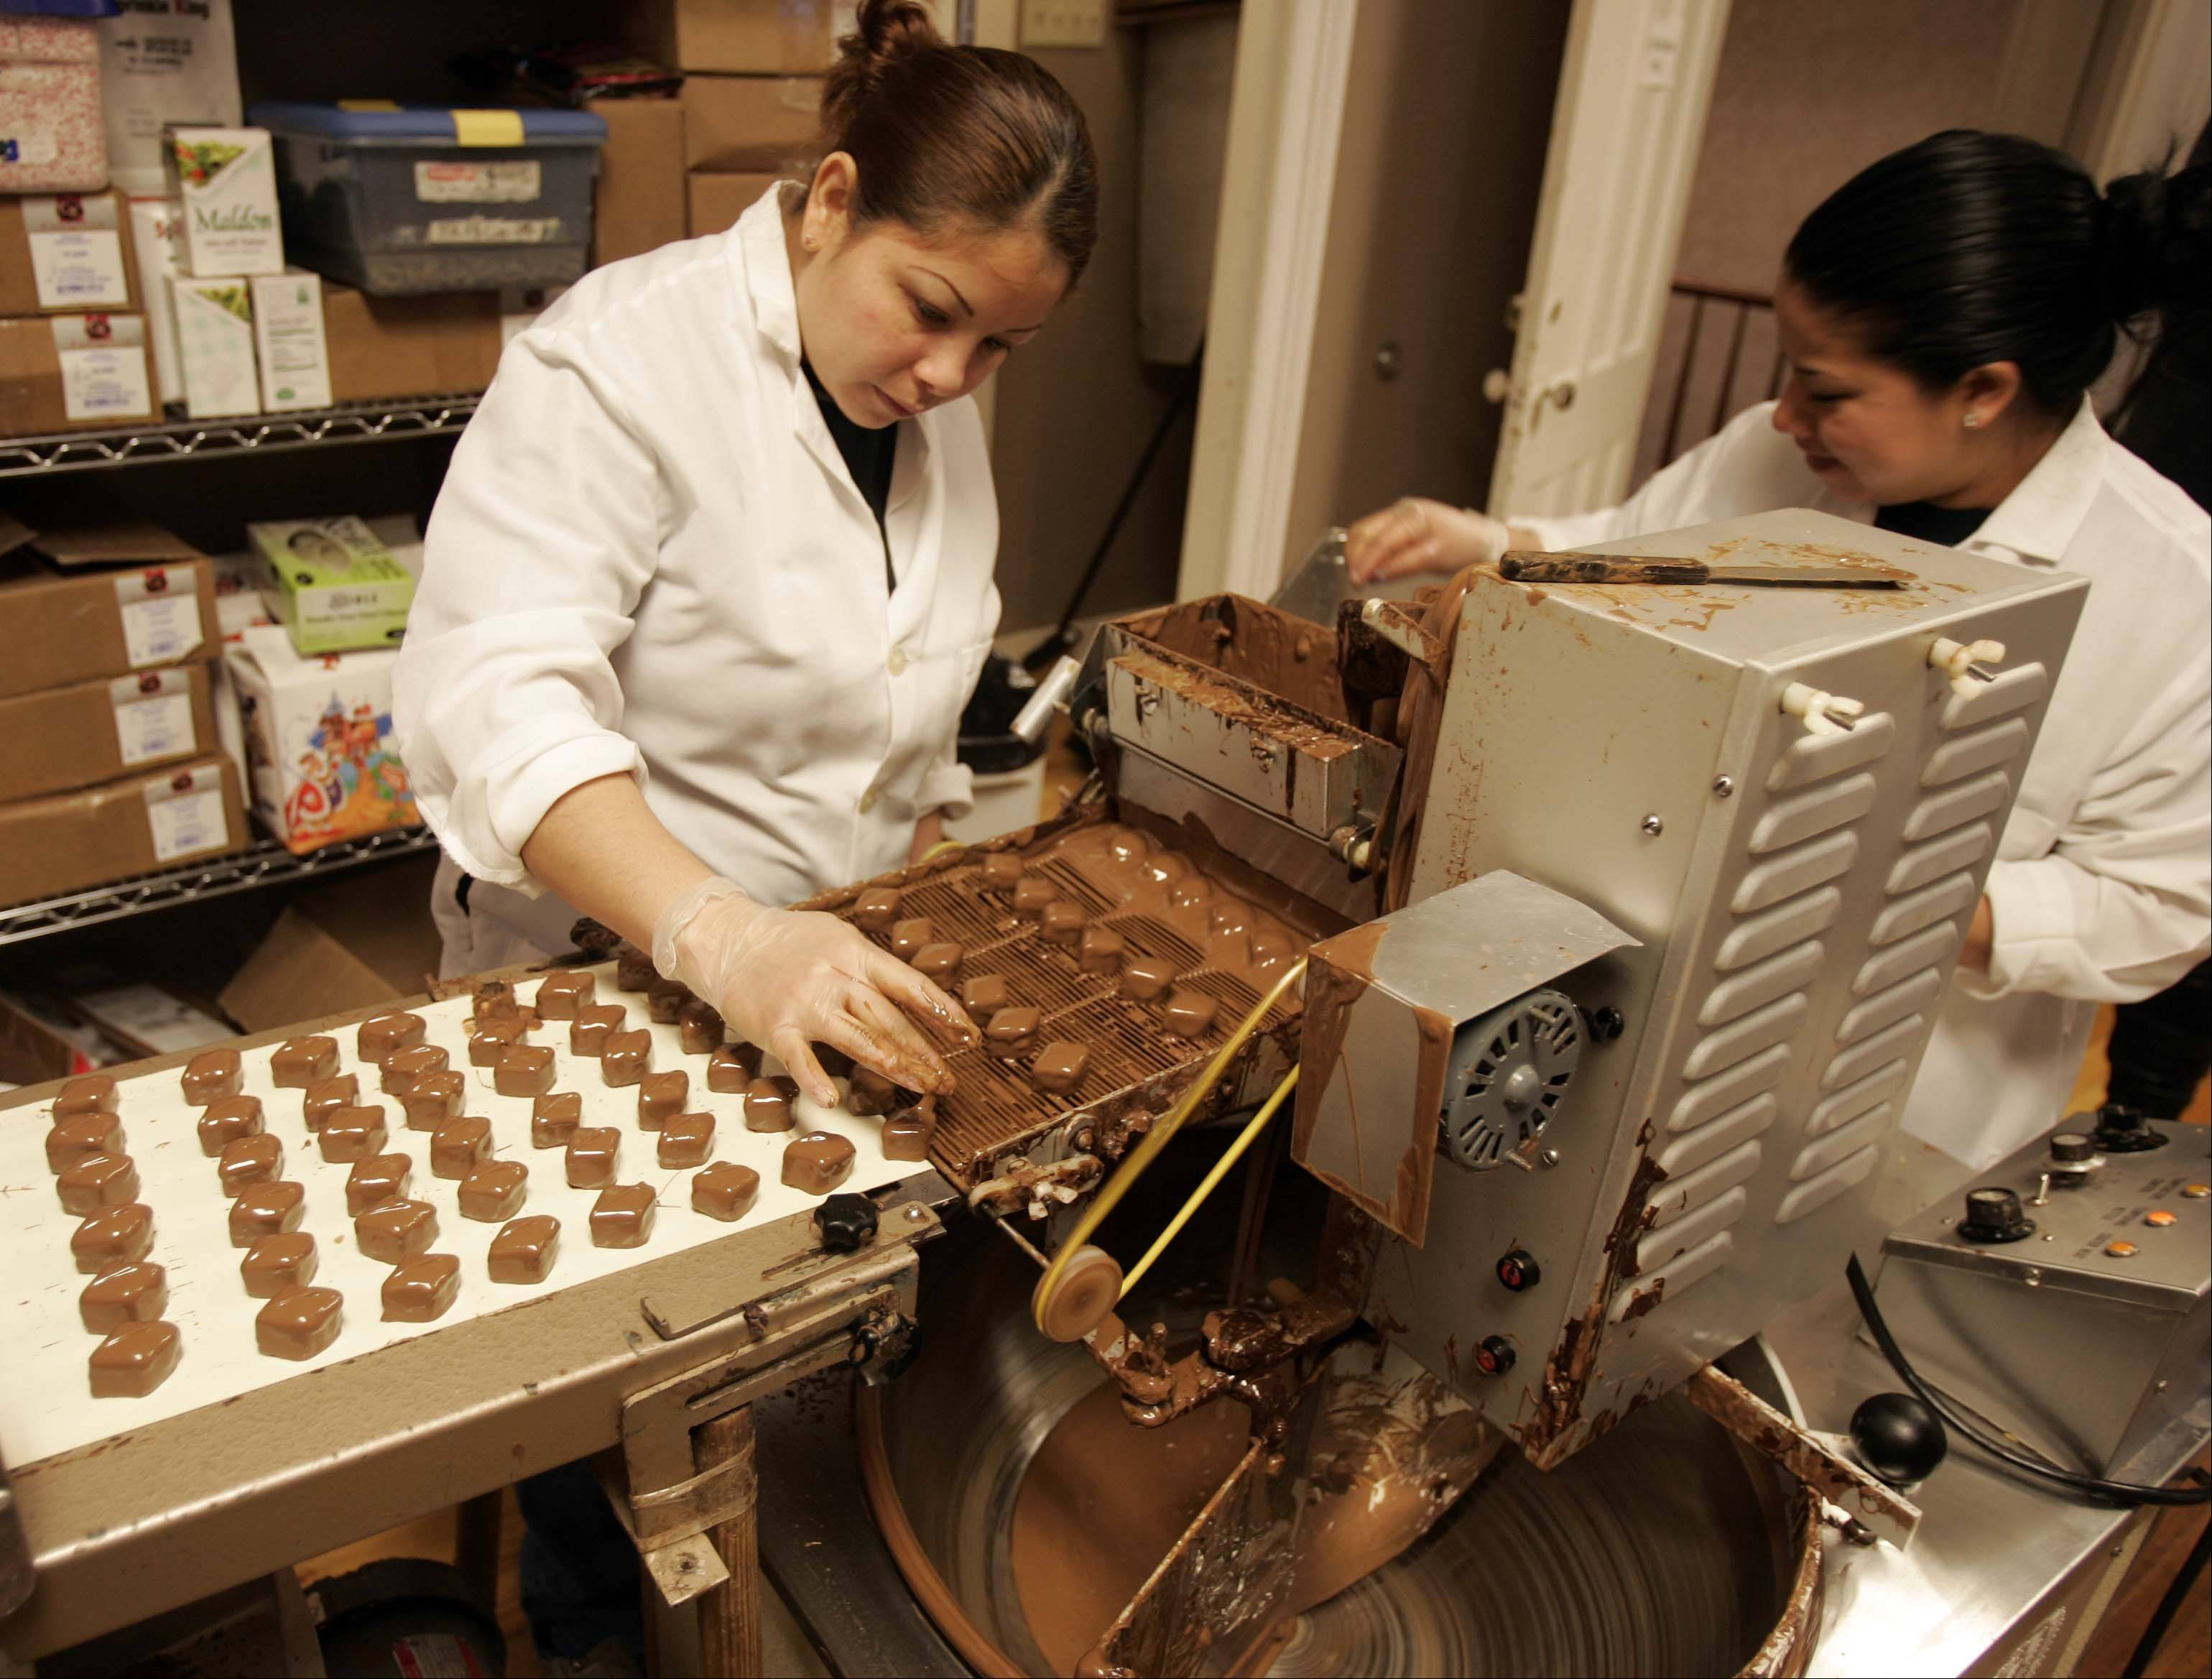 Mireya Ojeda, left, puts the swirl on the top of some peanut butter diamonds at Graham's Fine Chocolates and Ice Cream in Geneva. The staff can tell what is in the candy by looking at the swirl, which is different for each type of candy.